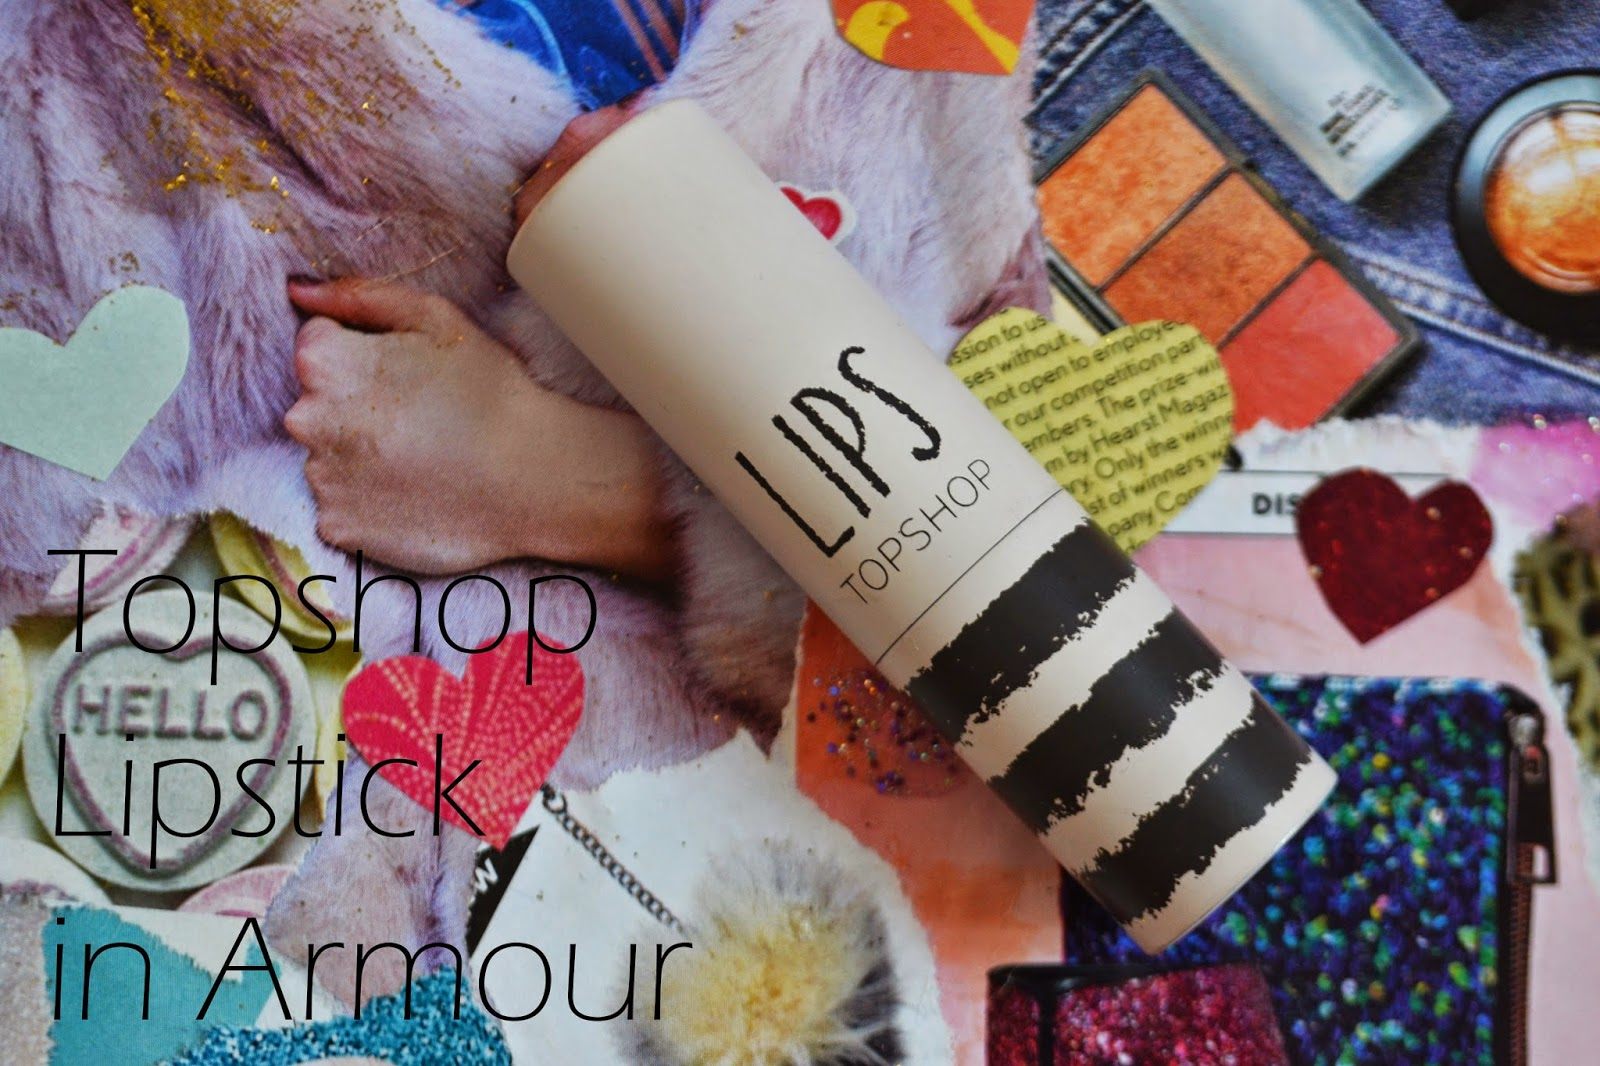 TOPSHOP LIPSTICK IN SHADE ARMOUR PHOTO